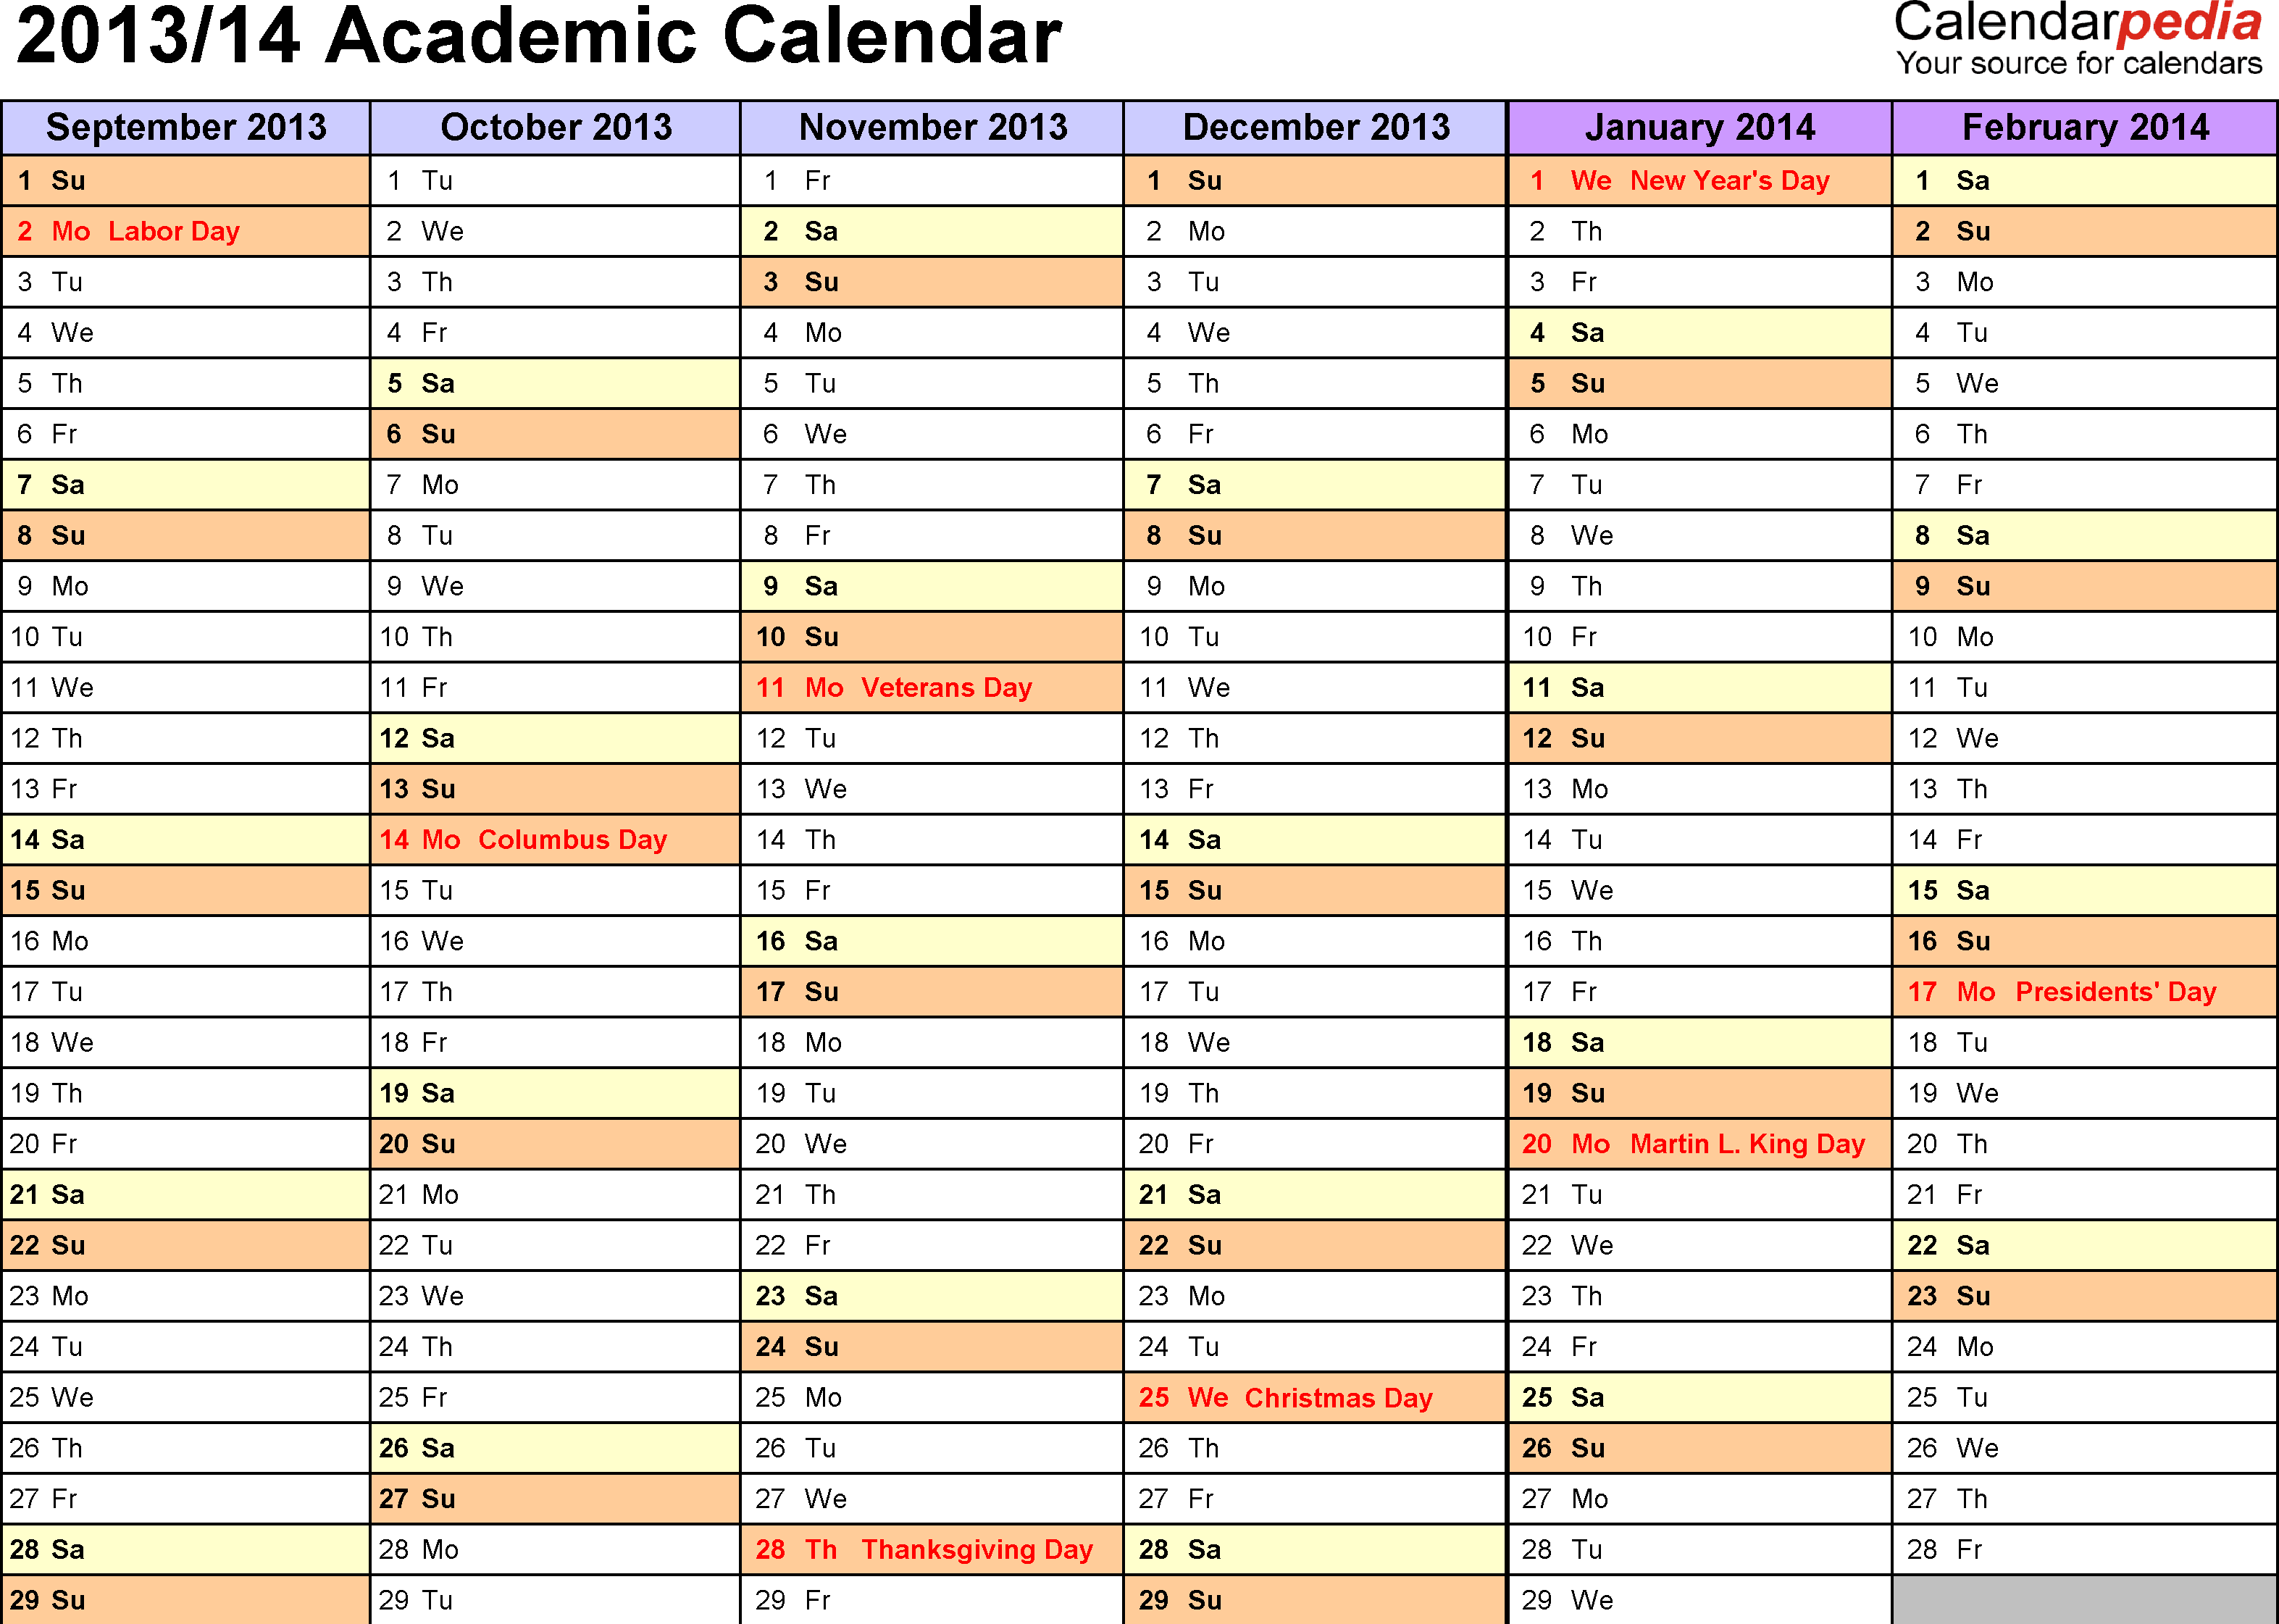 Download Template 2: Academic calendar 2013/14 for Microsoft Excel (.xlsx file), landscape, 2 pages, half a year per page